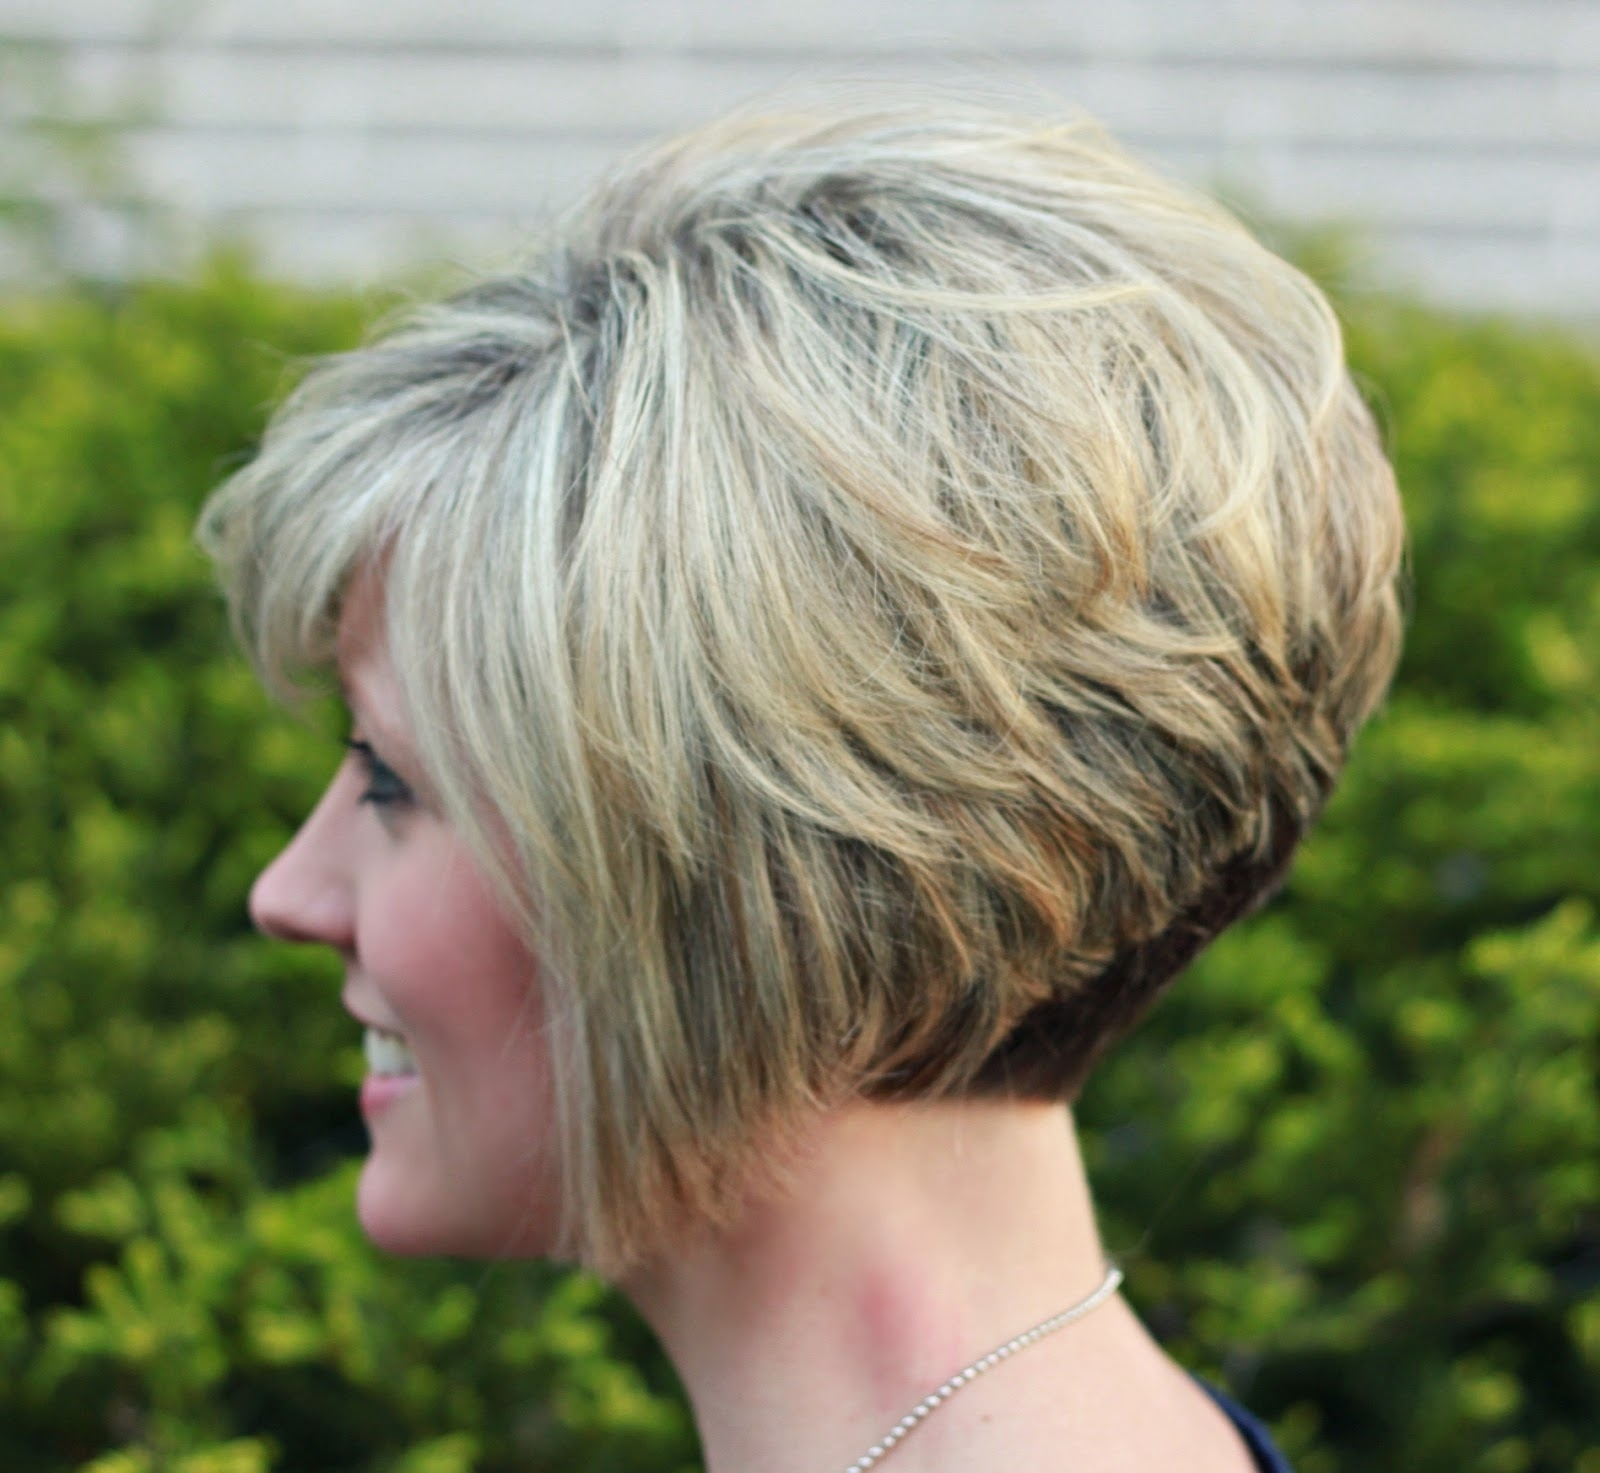 60 Best Hairstyles And Haircuts For Women Over 60 To Suit Any Taste In Current Angled Pixie Bob Hairstyles With Layers (View 6 of 20)